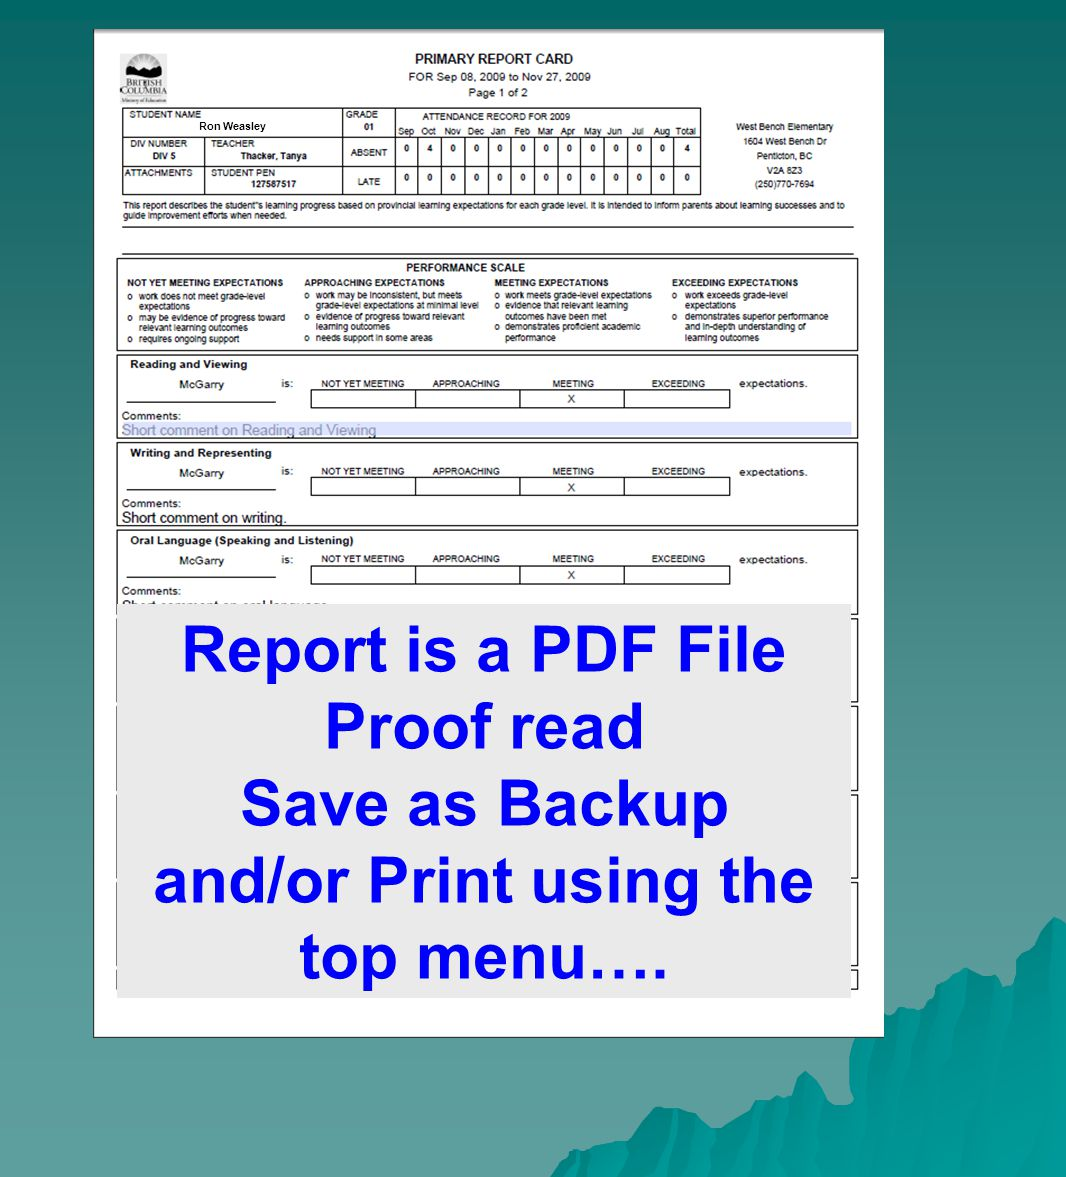 Ron Weasley Report is a PDF File Proof read Save as Backup and/or Print using the top menu….